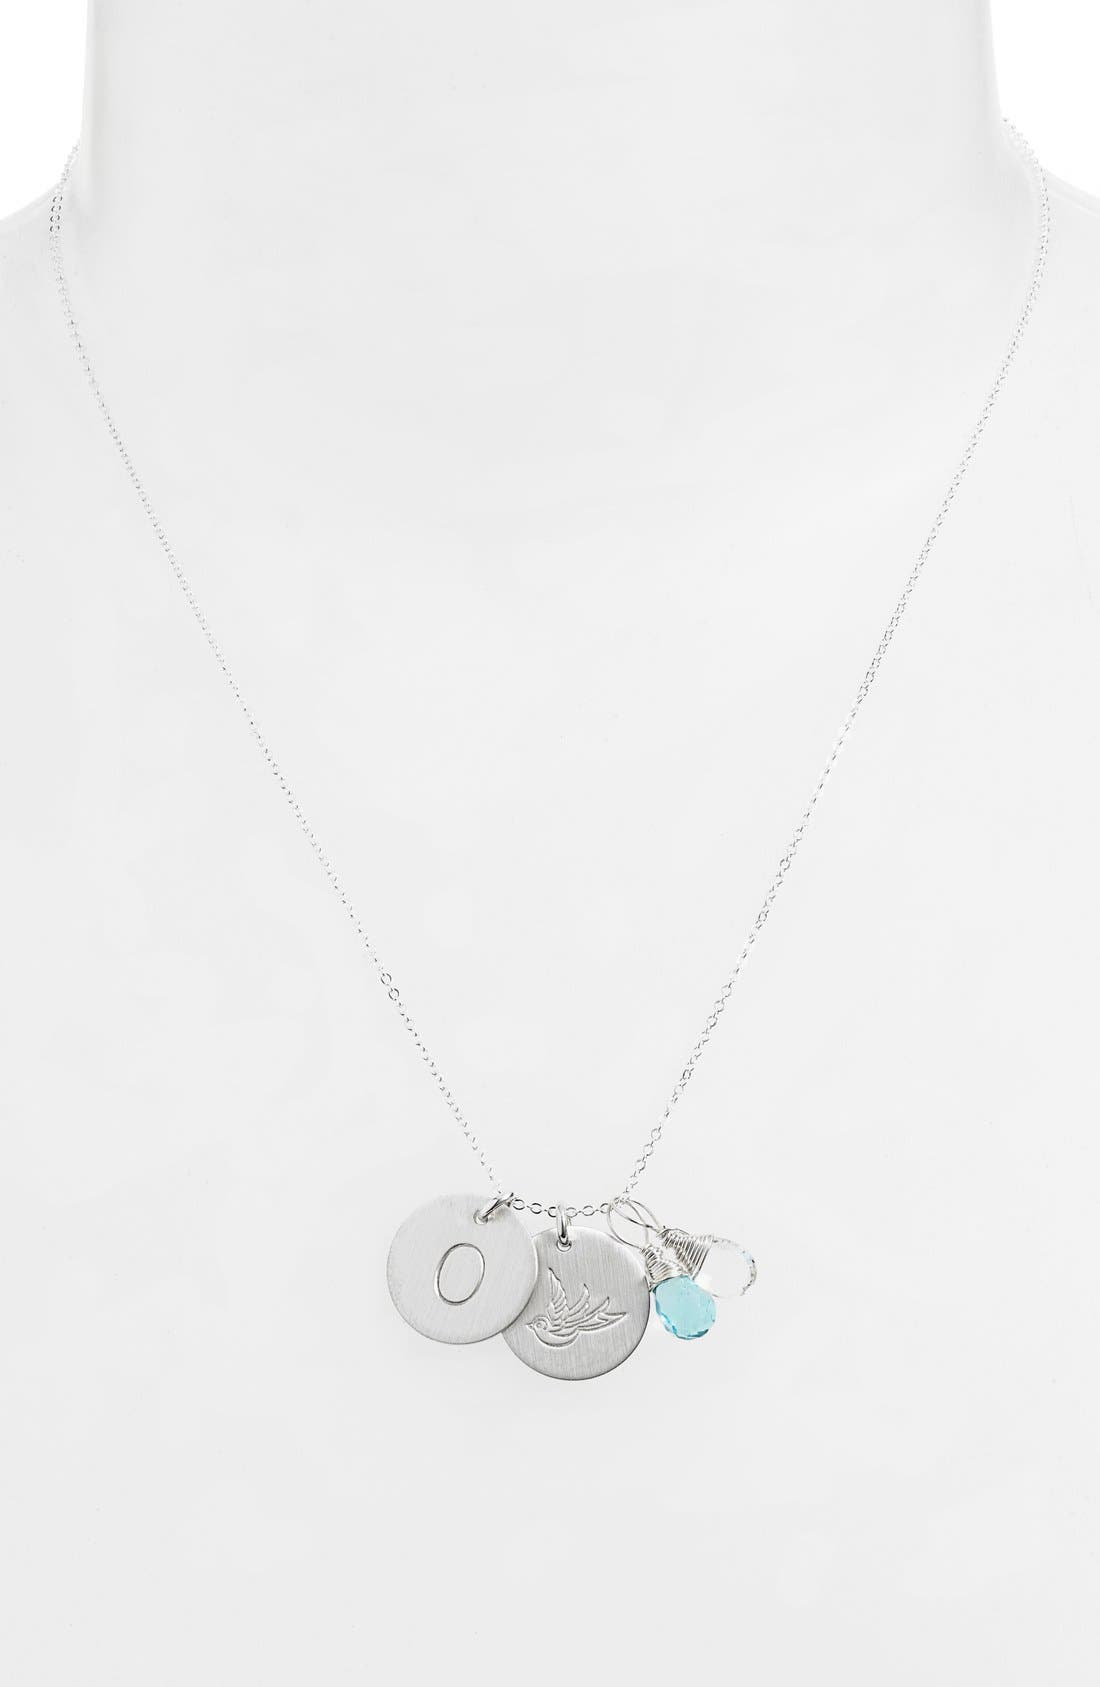 Ocean Blue & Crystal Swallow Sterling Silver Initial Disc Necklace,                             Alternate thumbnail 2, color,                             OCEAN BLUE AND CRYSTAL O